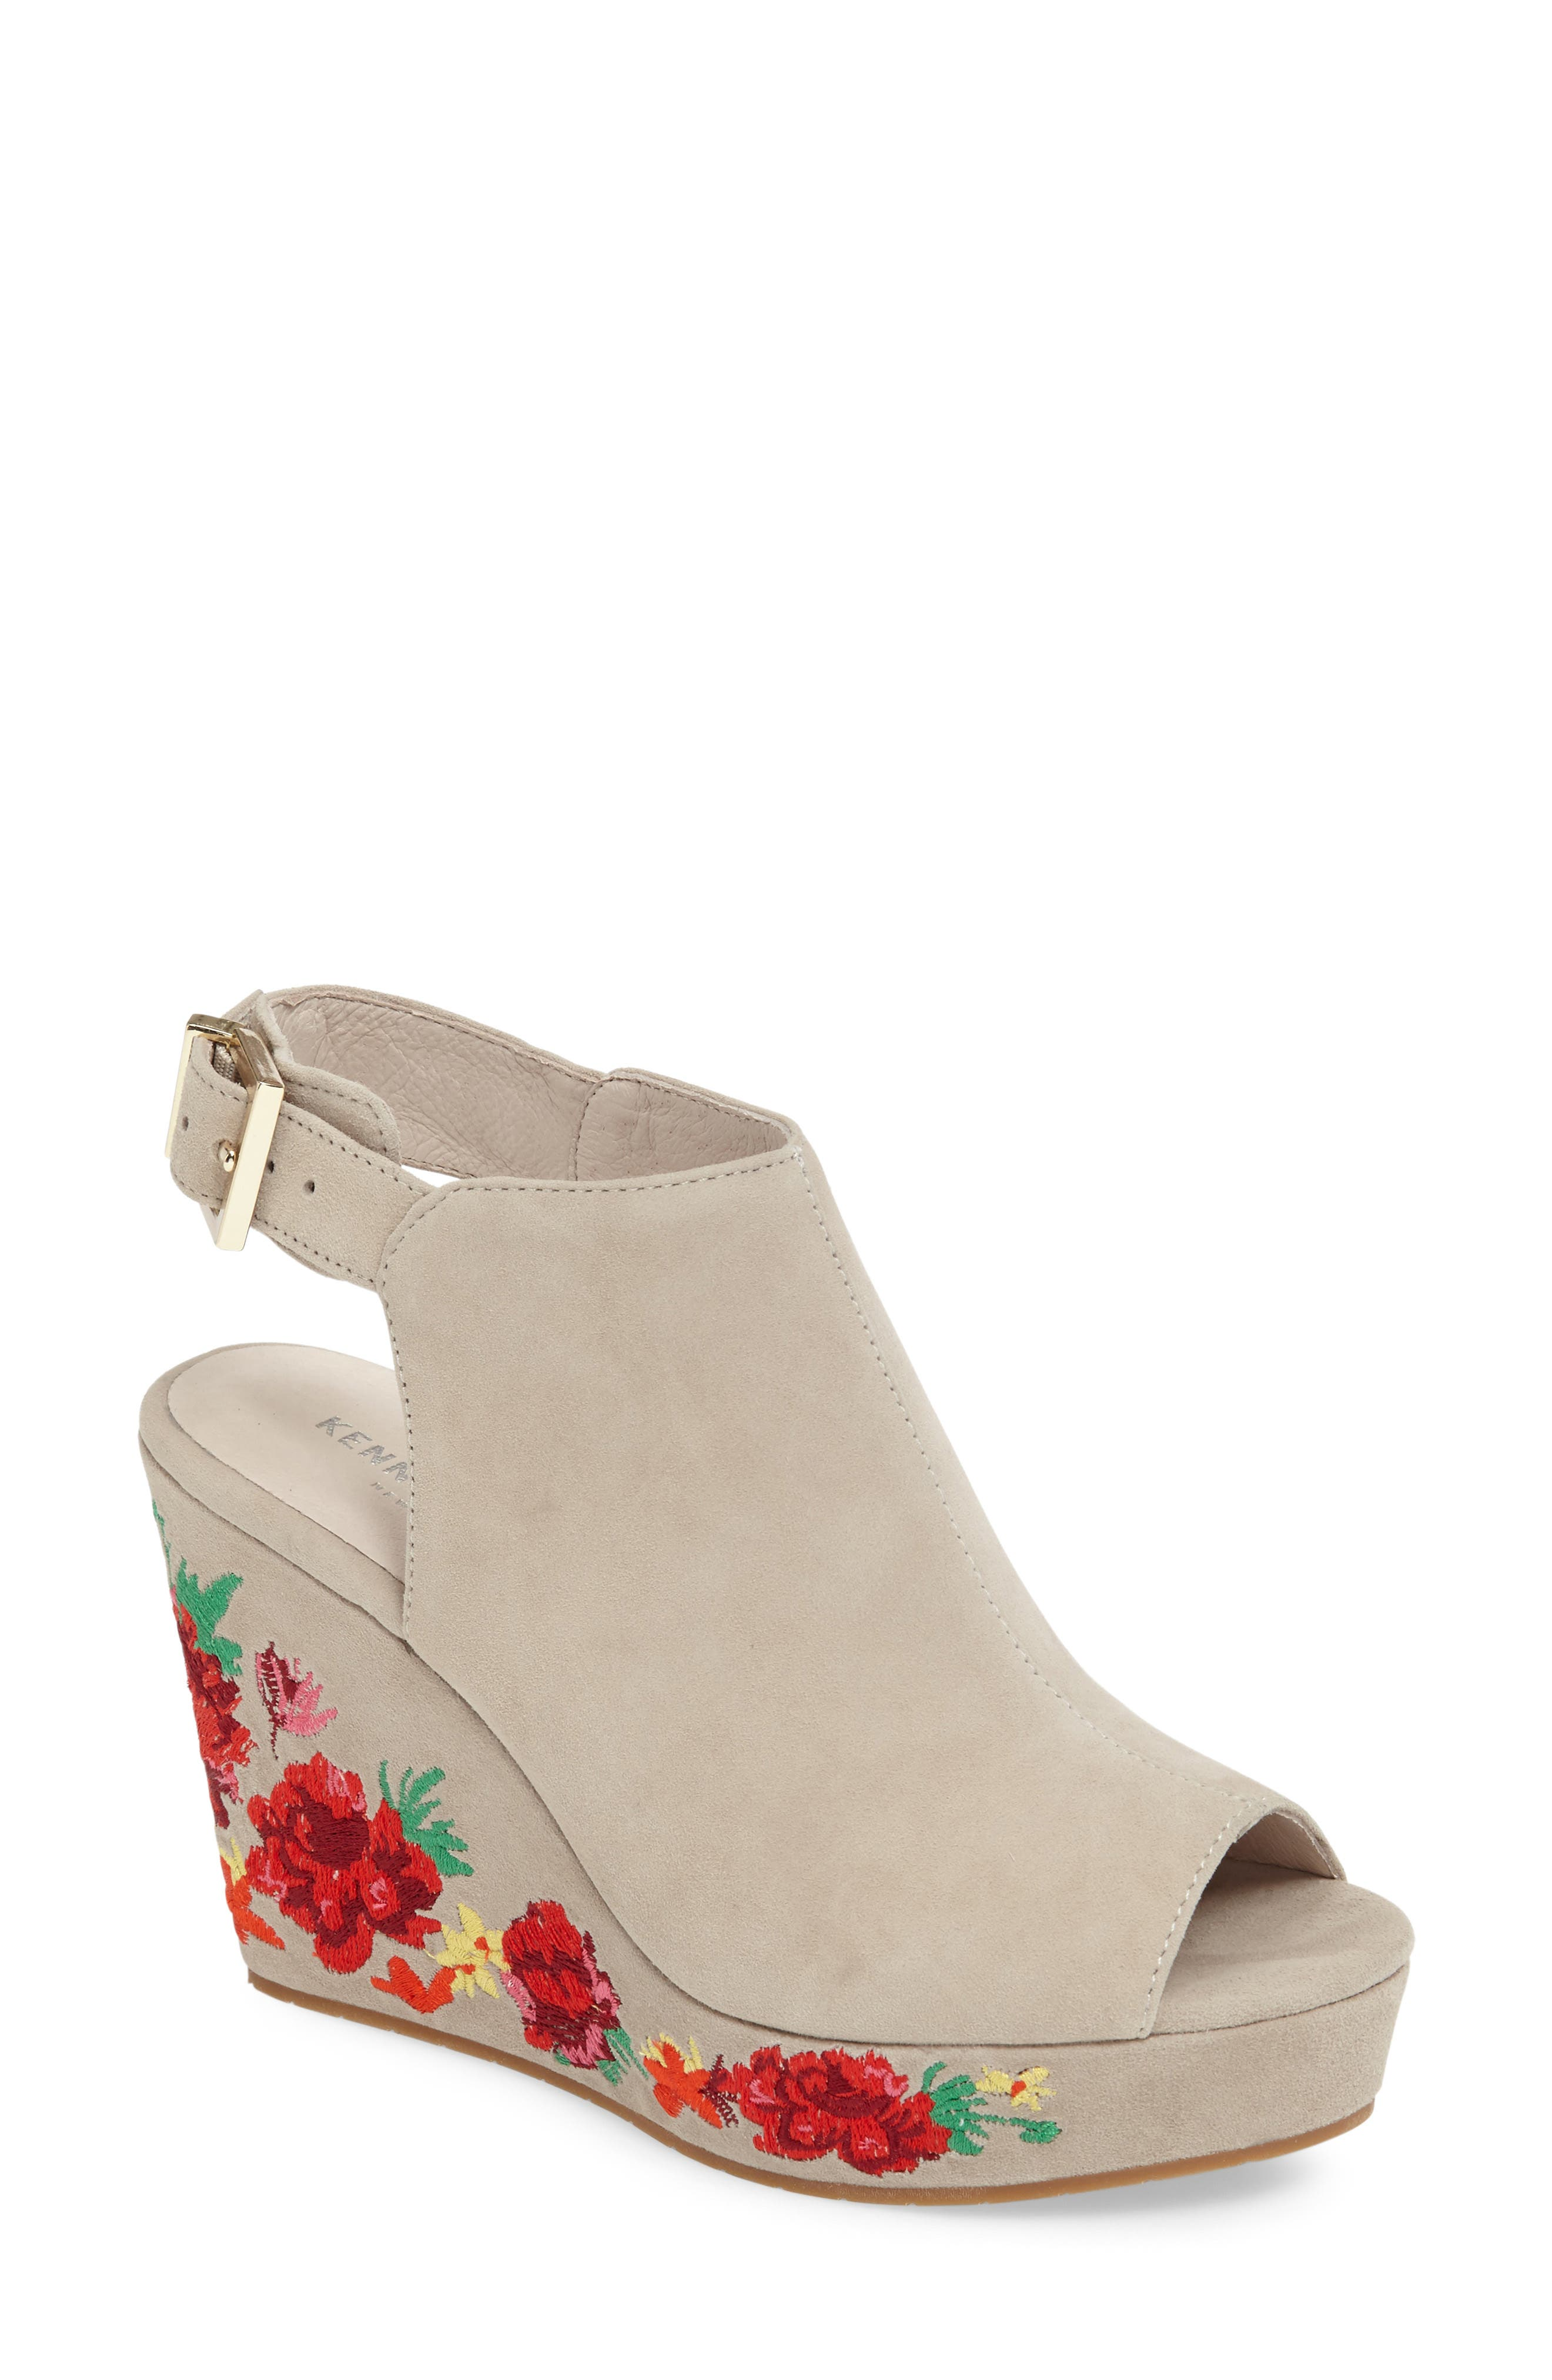 Kenneth Cole New York Olani Embroidered Wedge Sandal (Women)